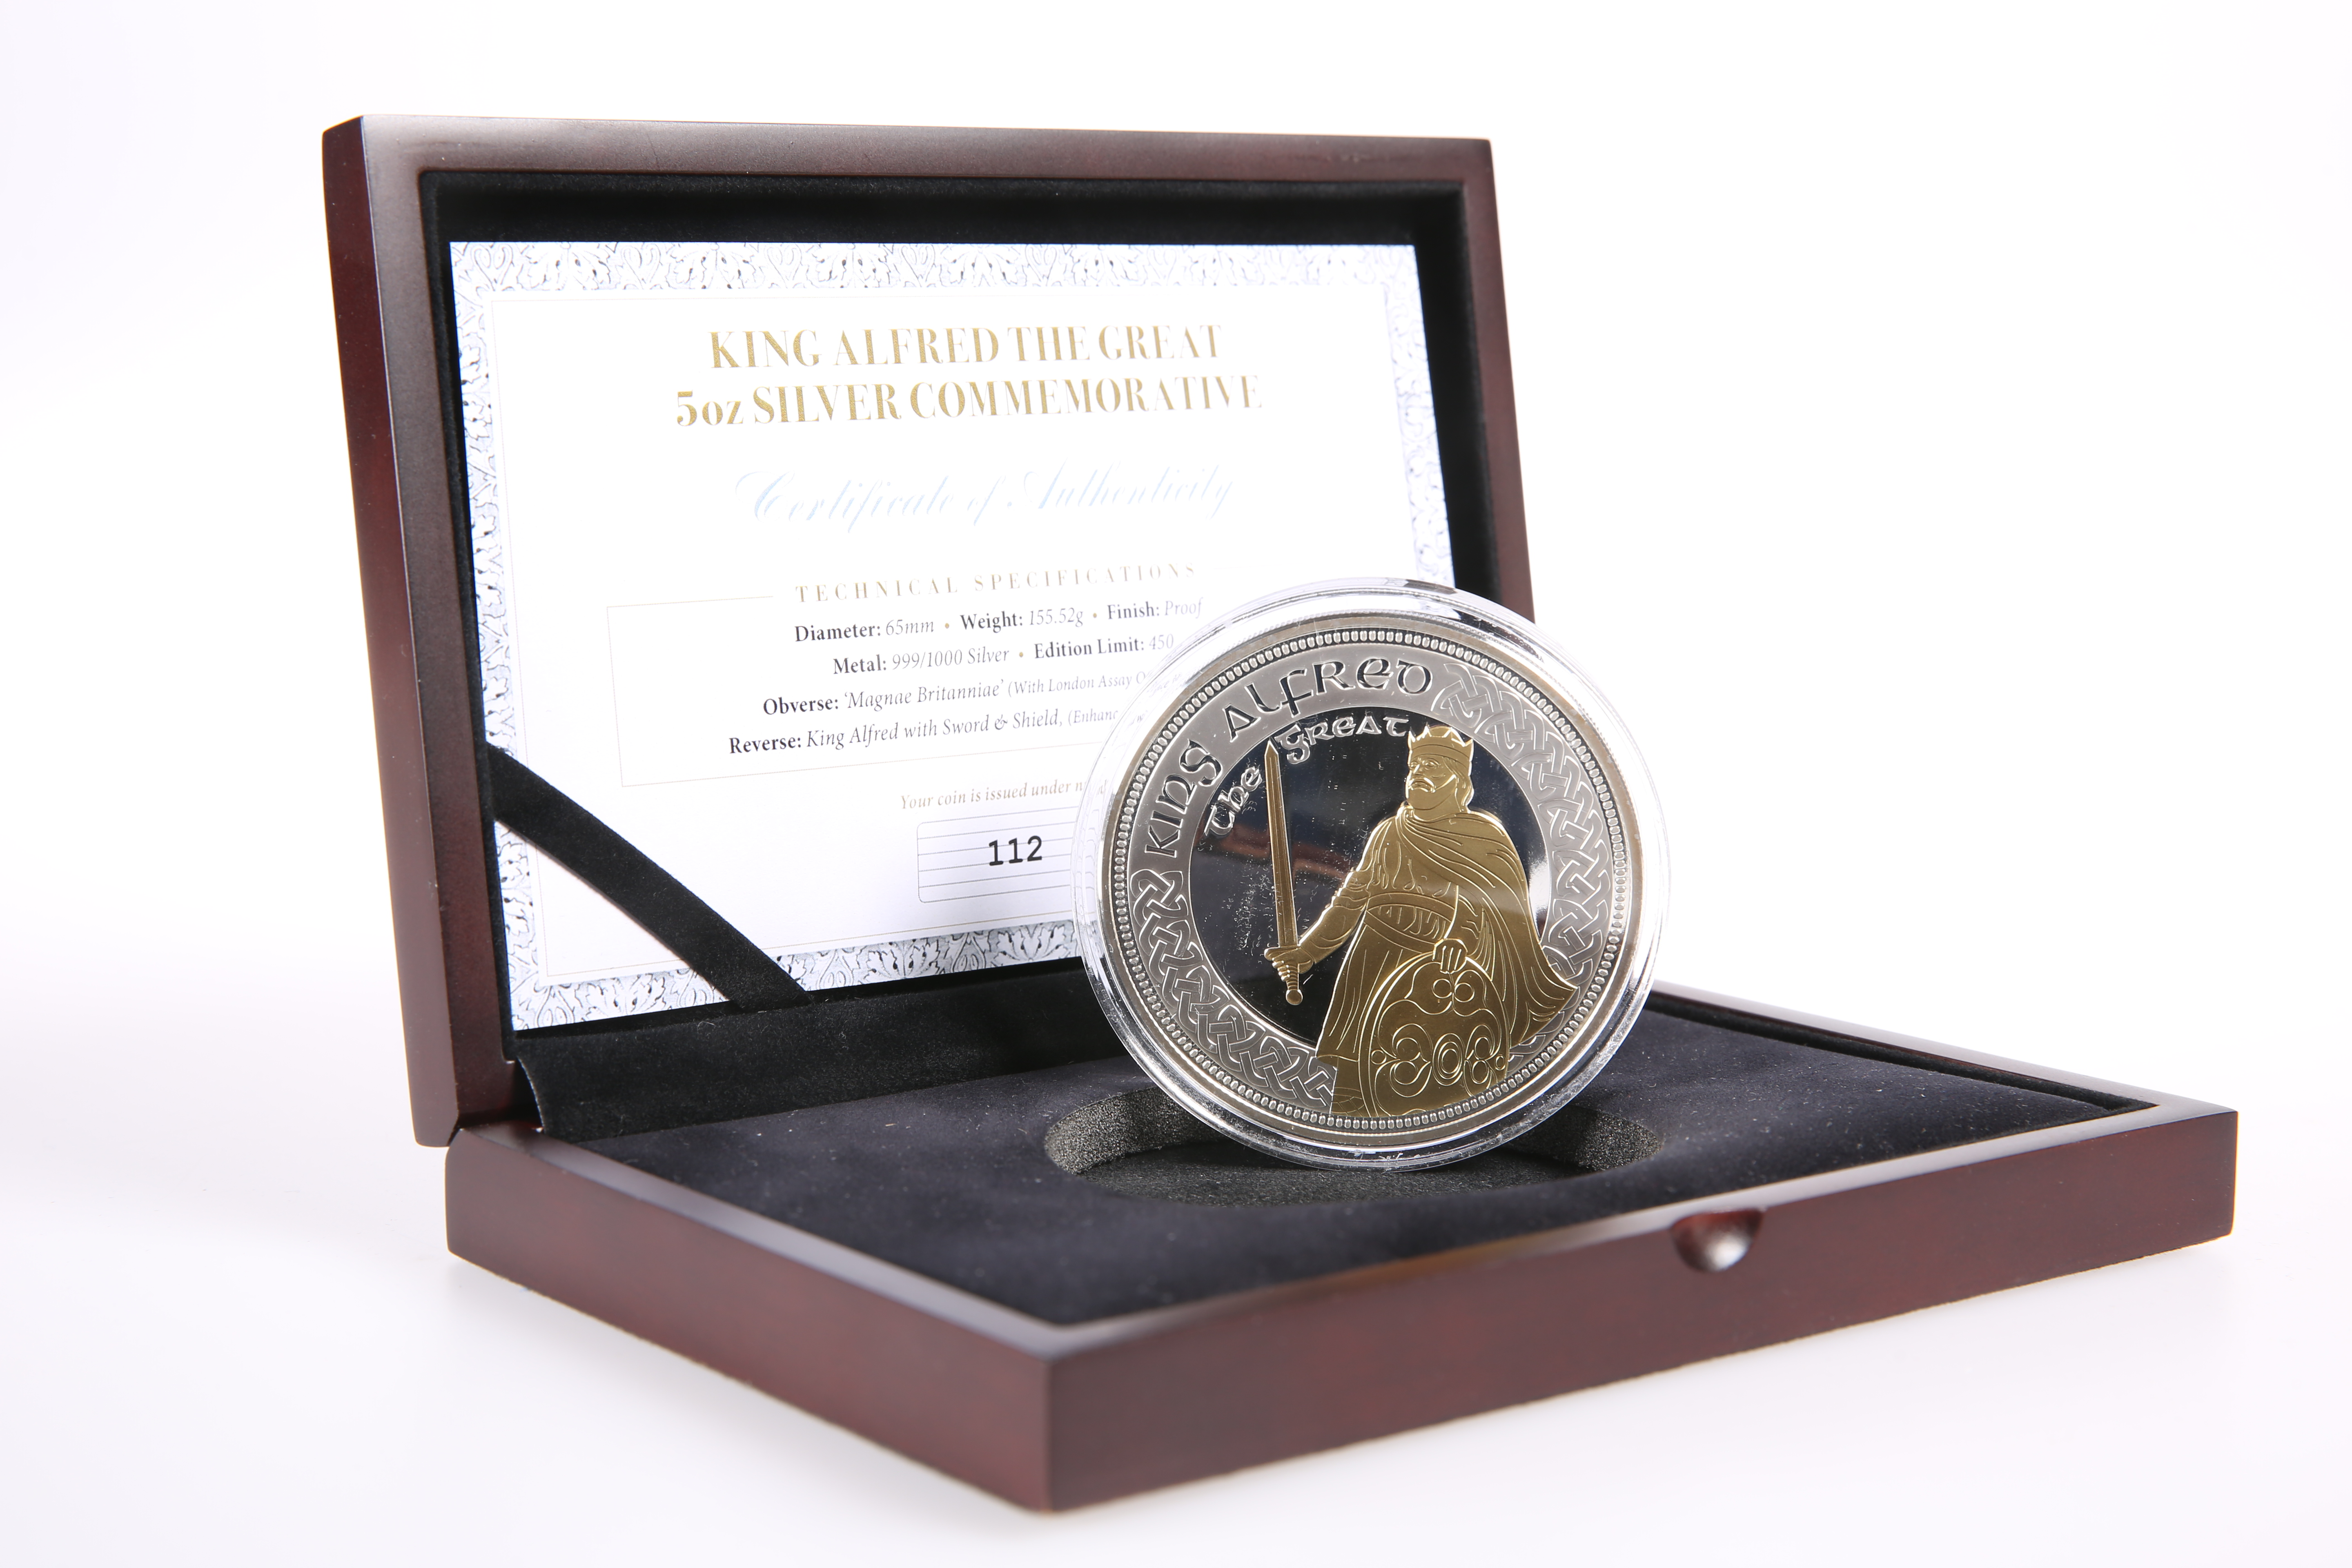 A KING ALFRED THE GREAT 5OZ SILVER COMMEMORATIVE, boxed with COA no. 112